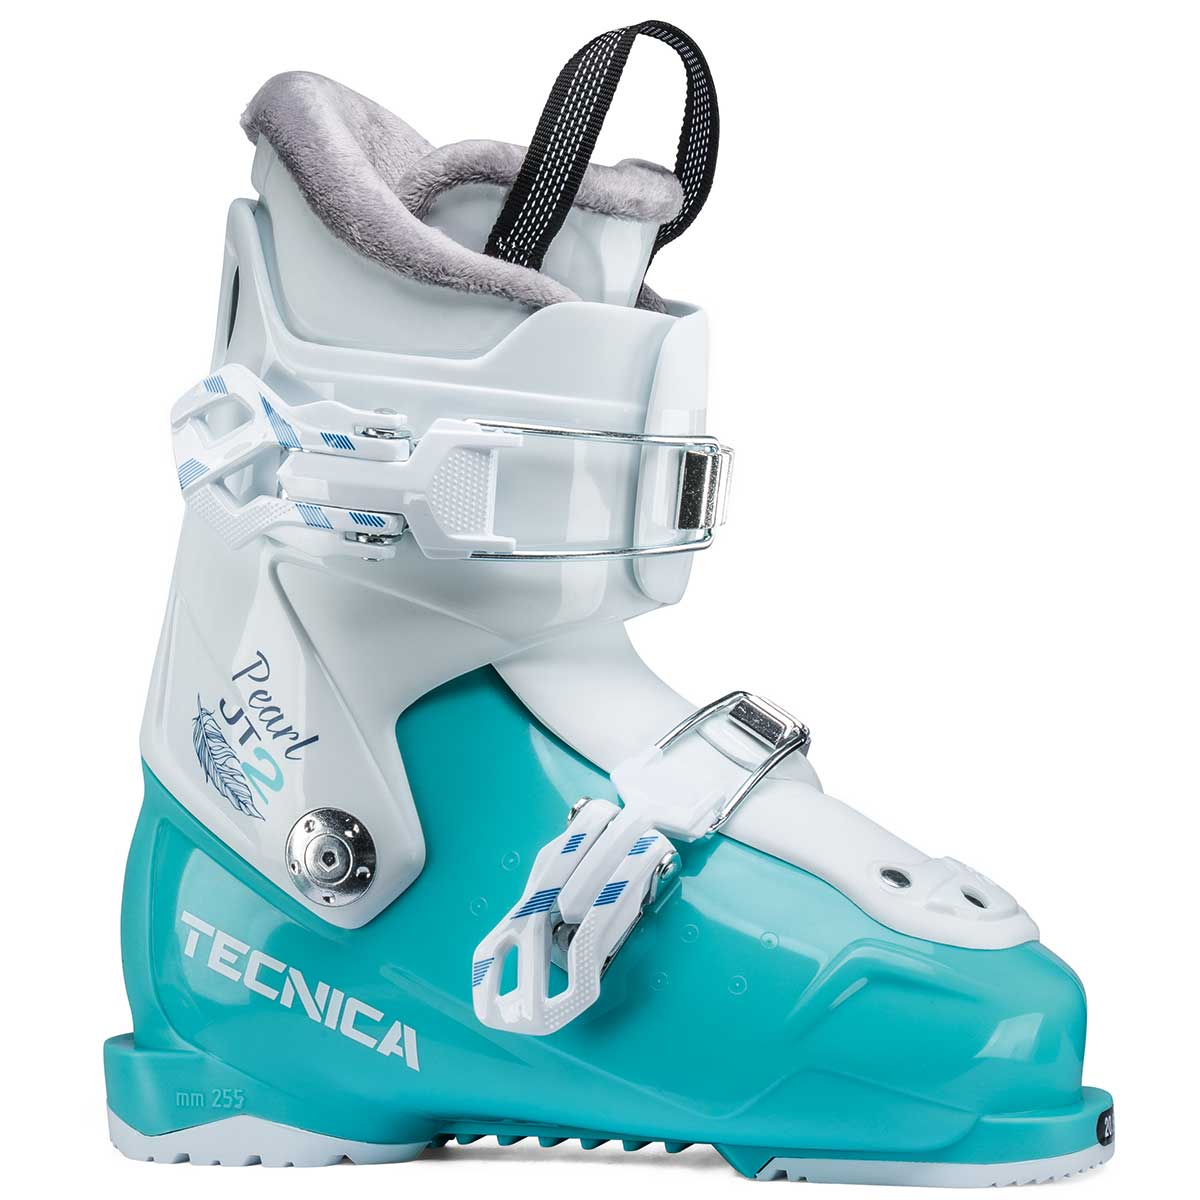 Tecnica JT 2 Pearl junior ski boot in light blue